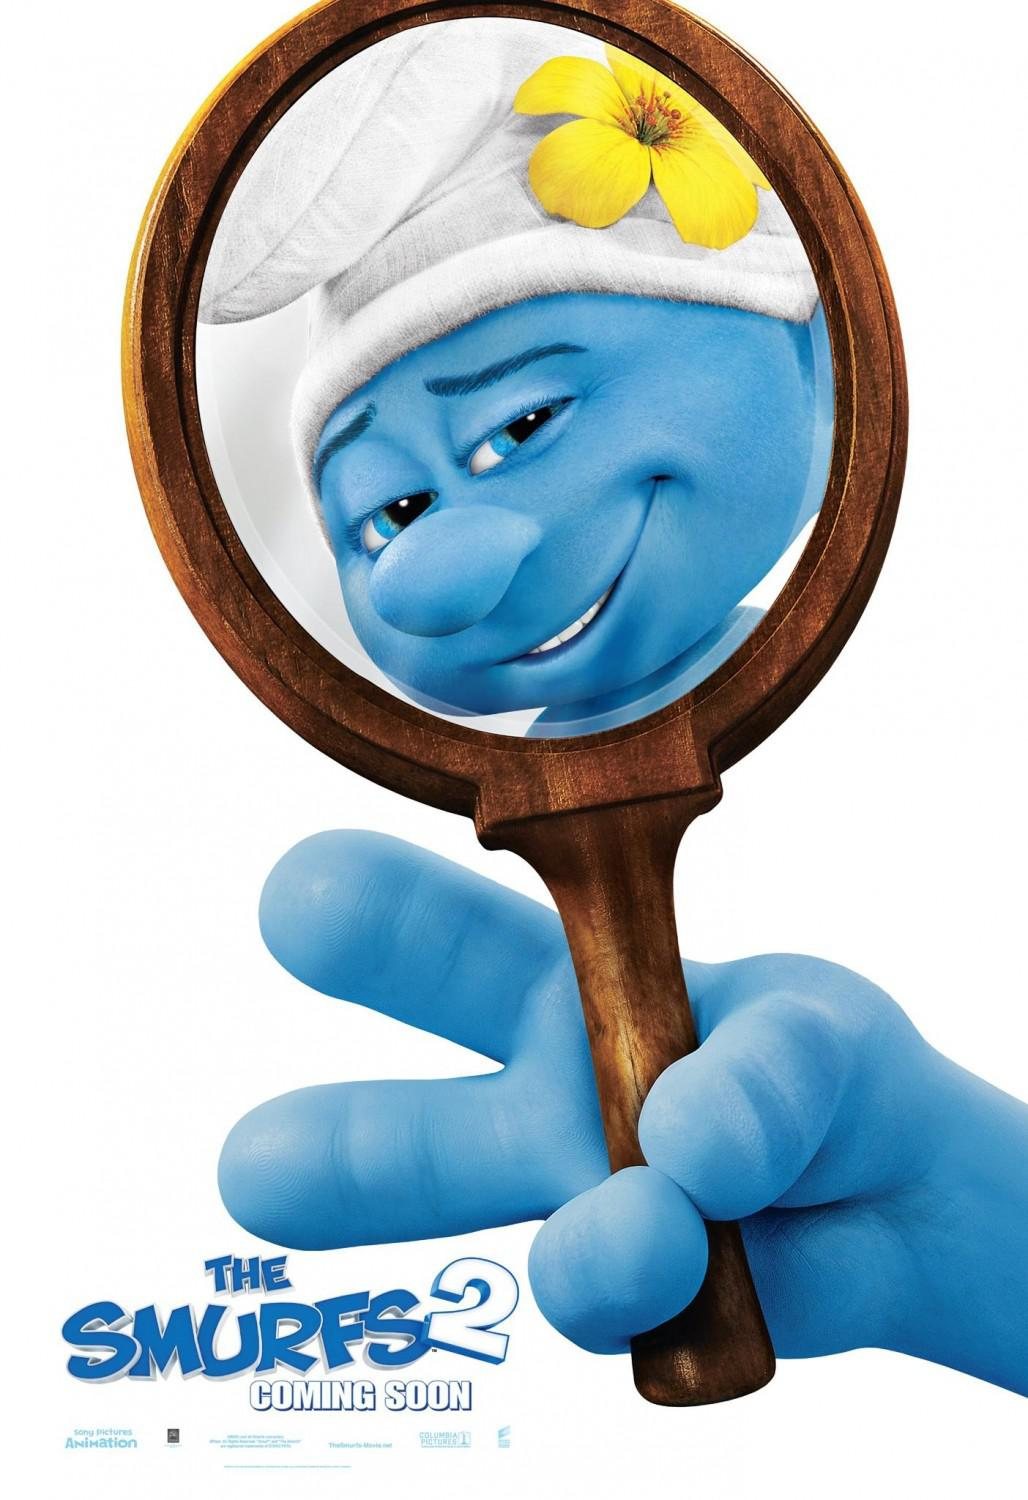 I Puffi 2 in 3D - Smurfs in 3D two - beauty - mirror